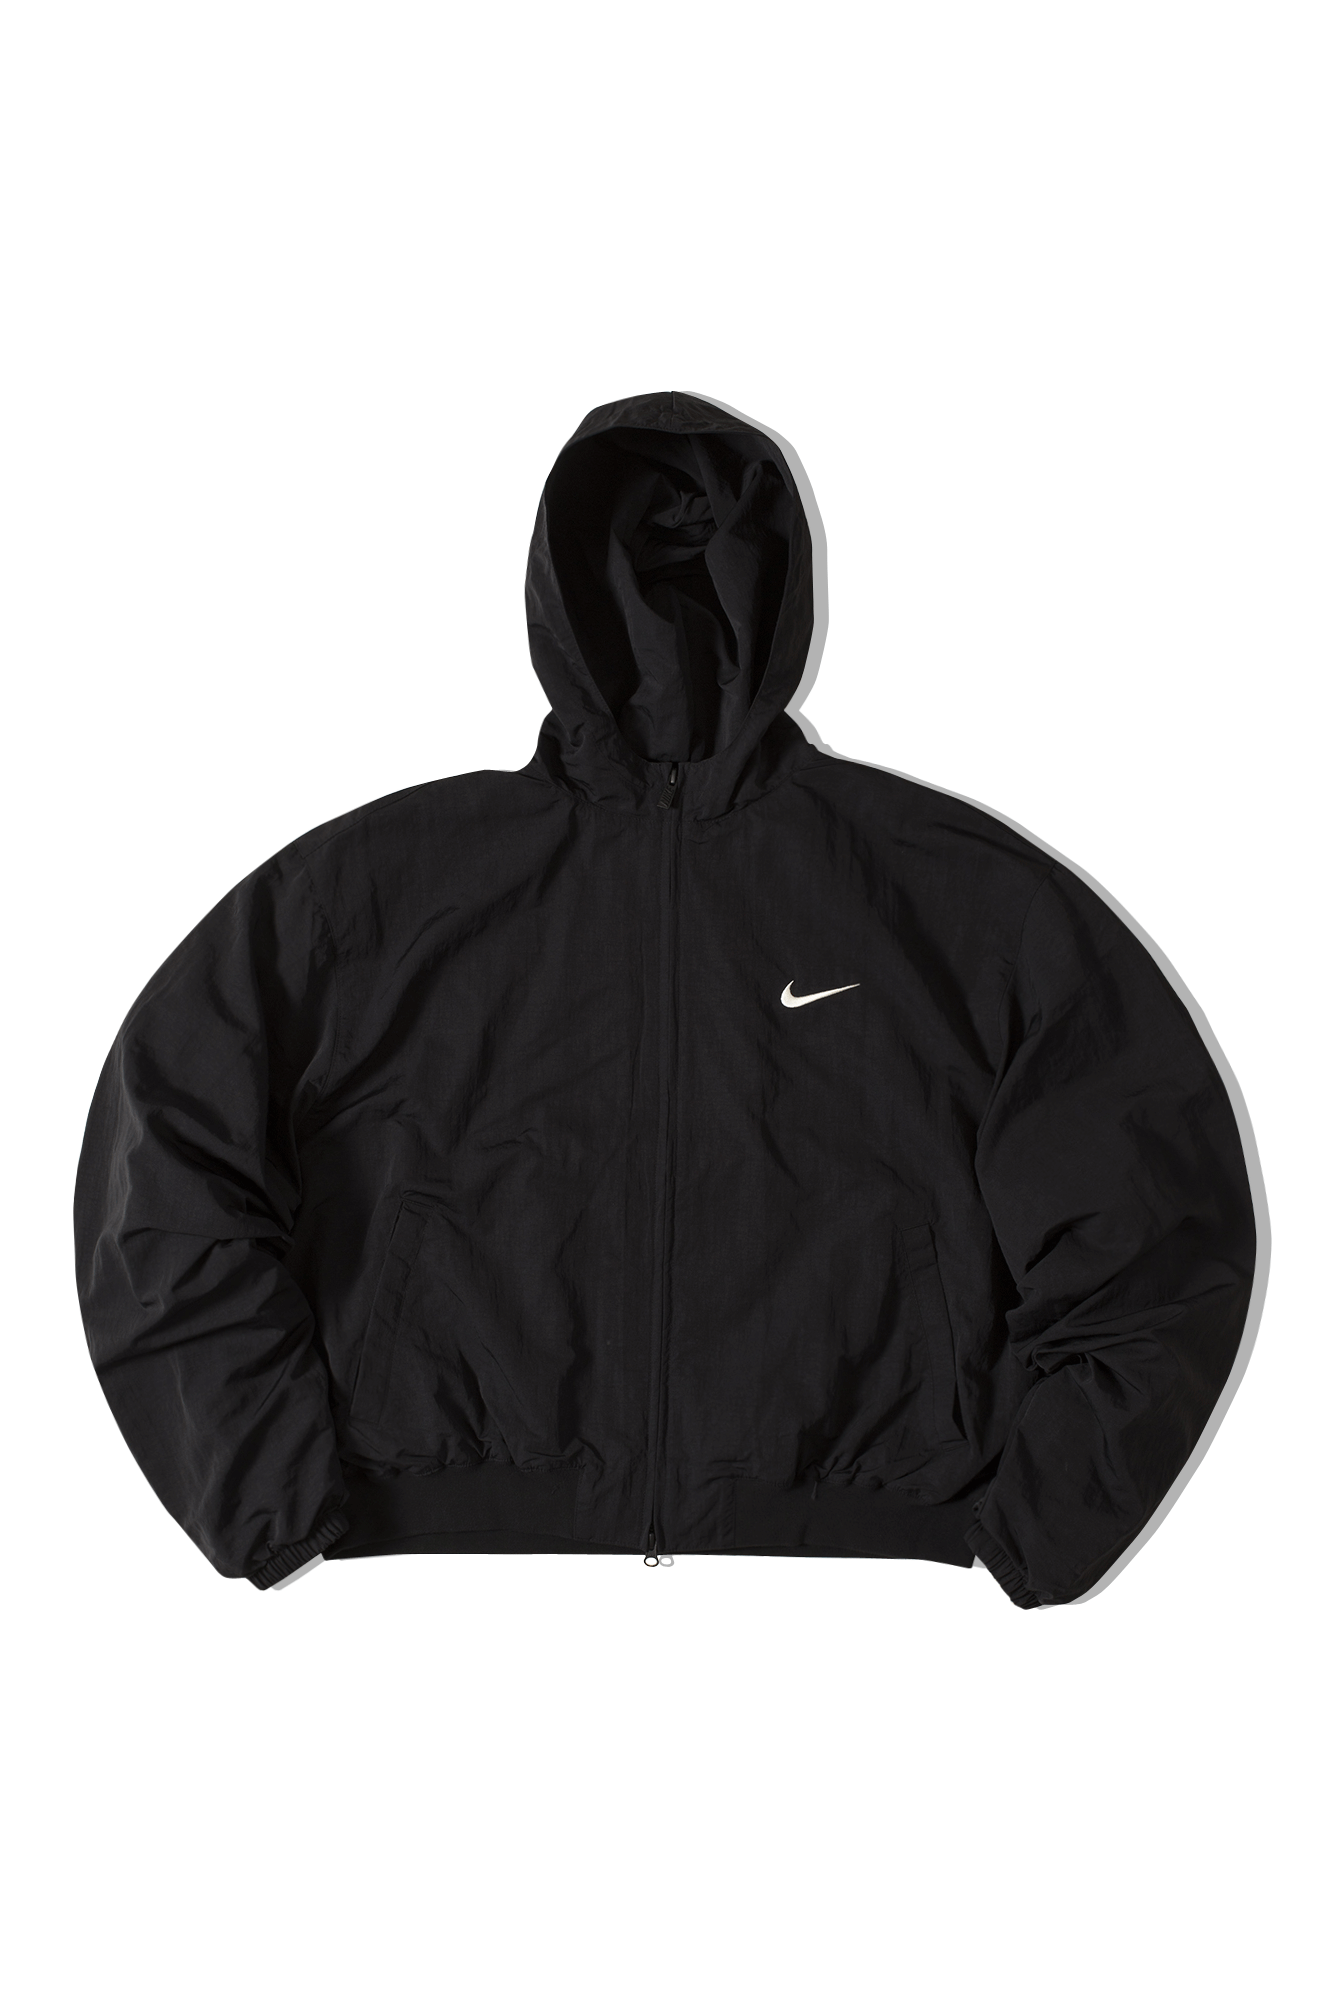 Nike Giacche & Cappotti Hooded Jacket x FEAR OF GOD Nero BV4408-#000#010#S - One Block Down